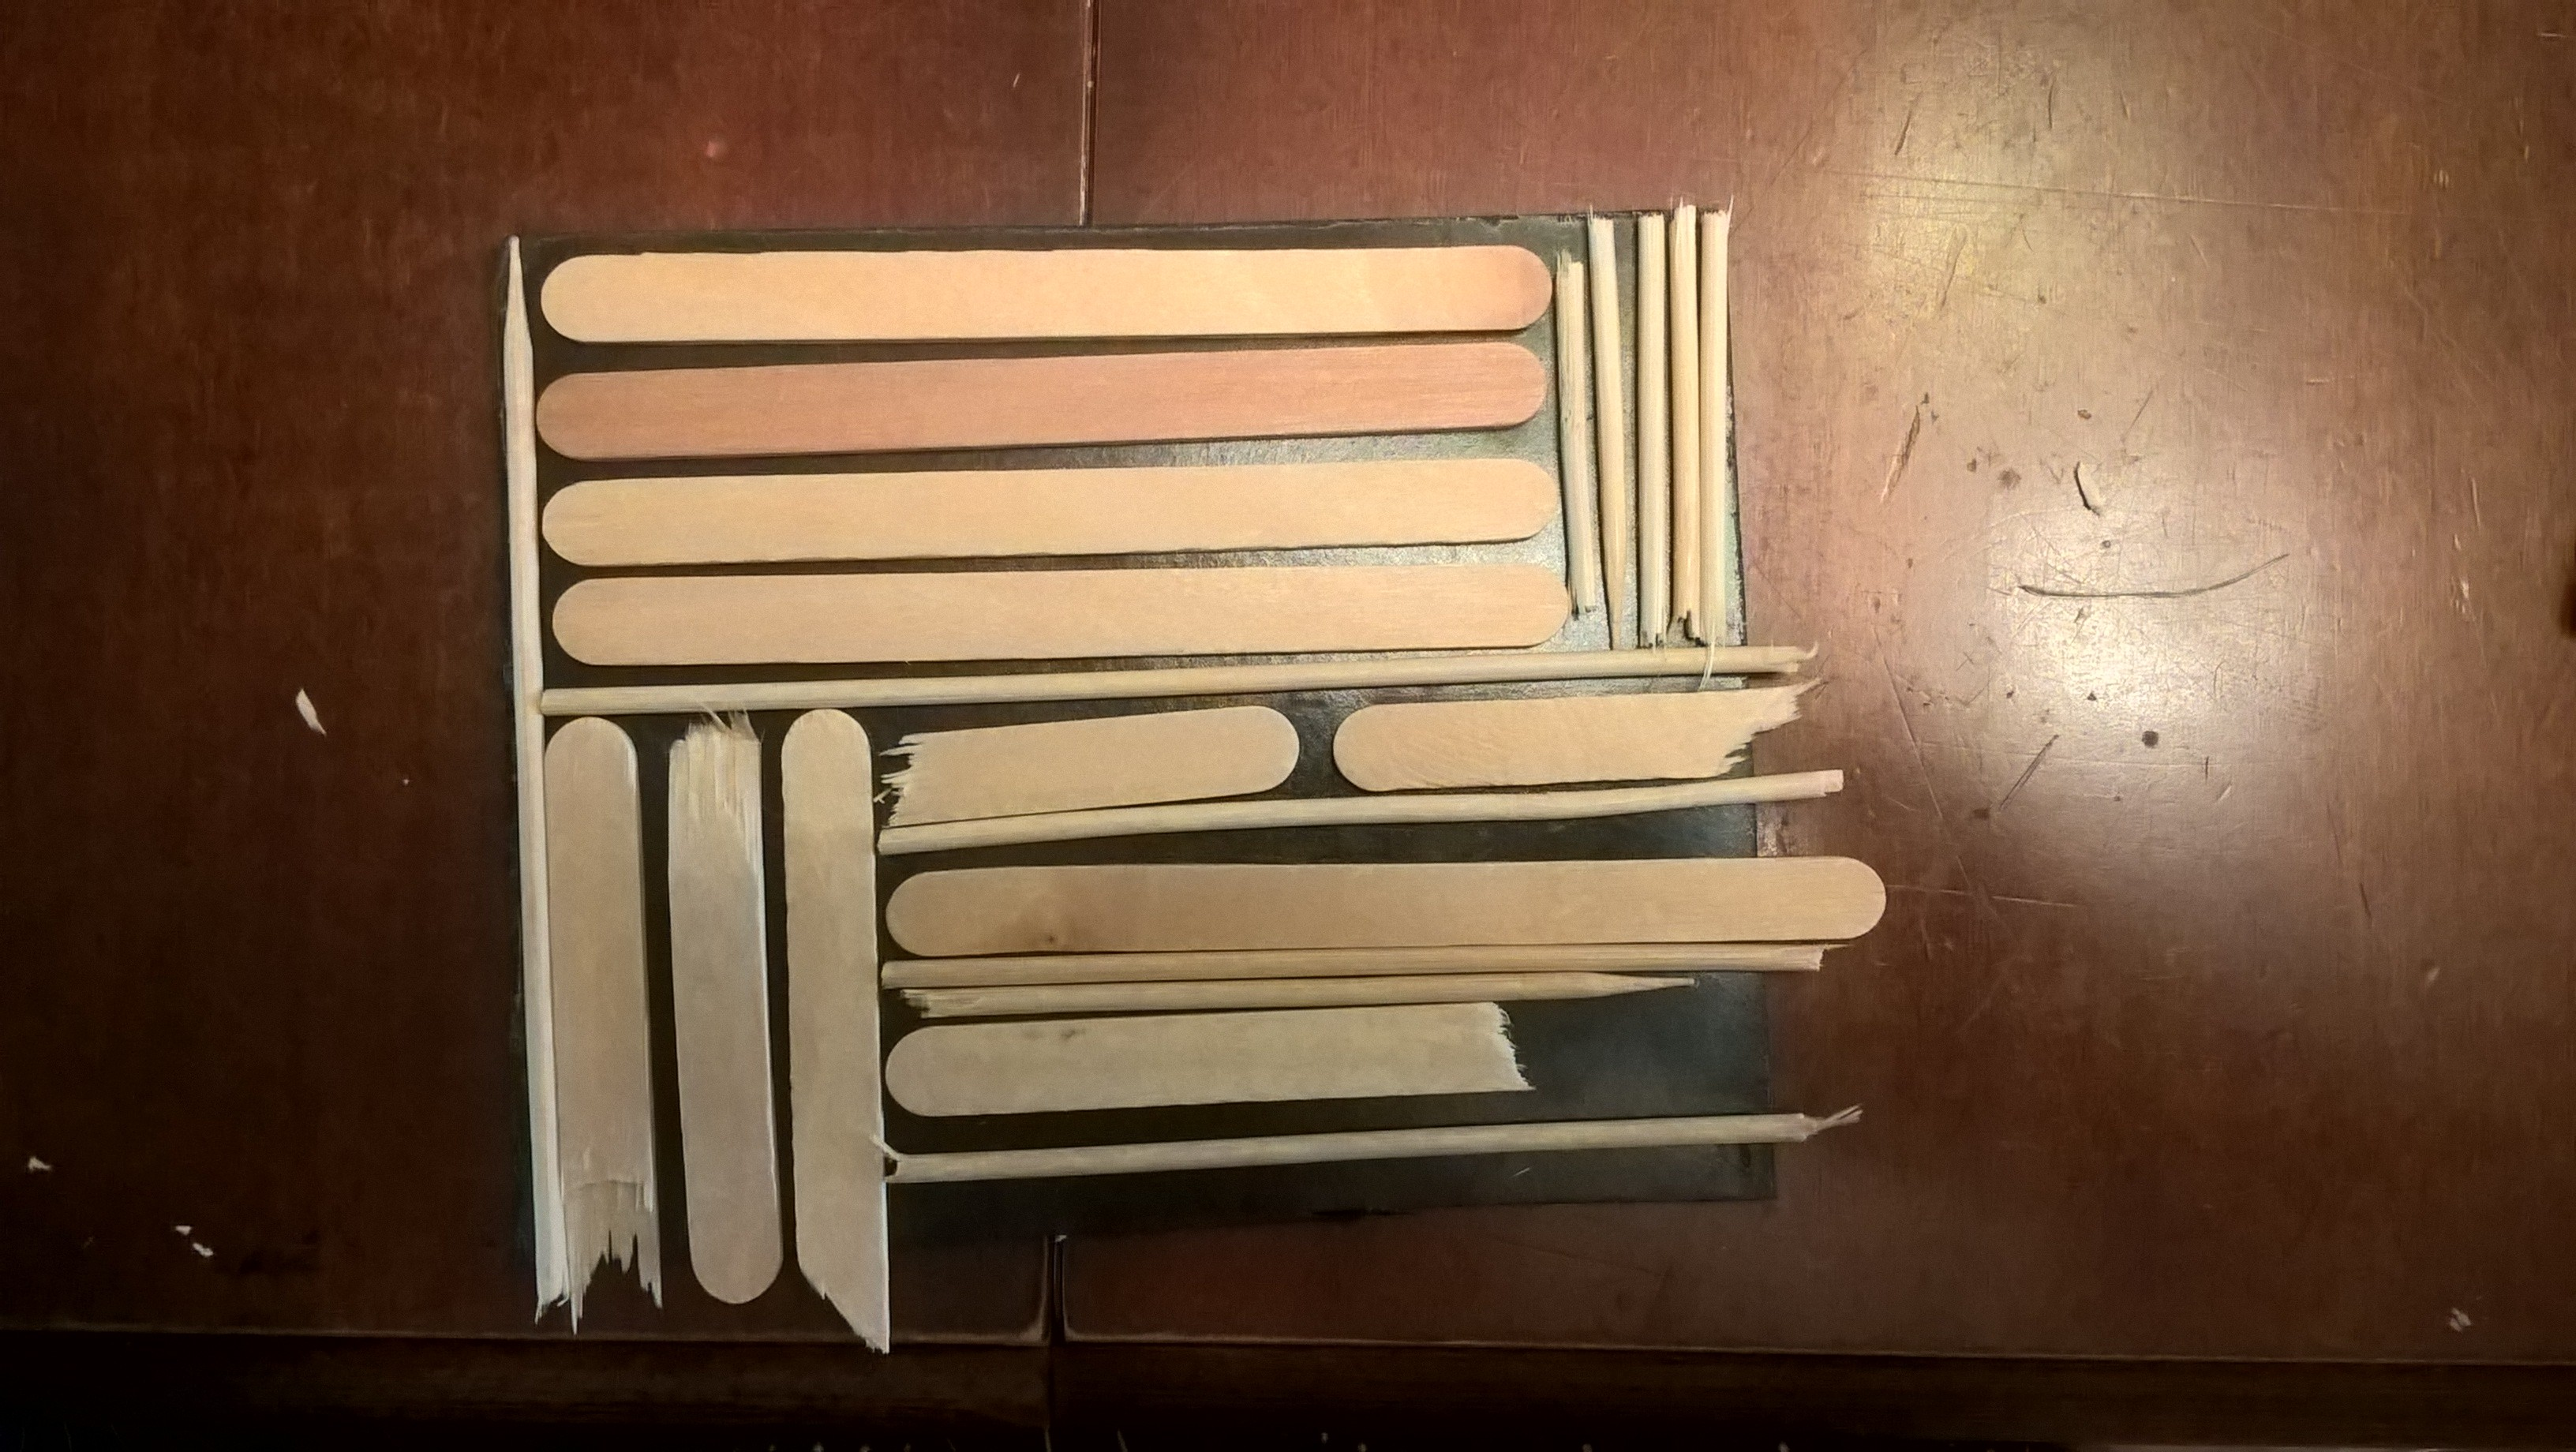 printing plate made with craft sticks and skewers